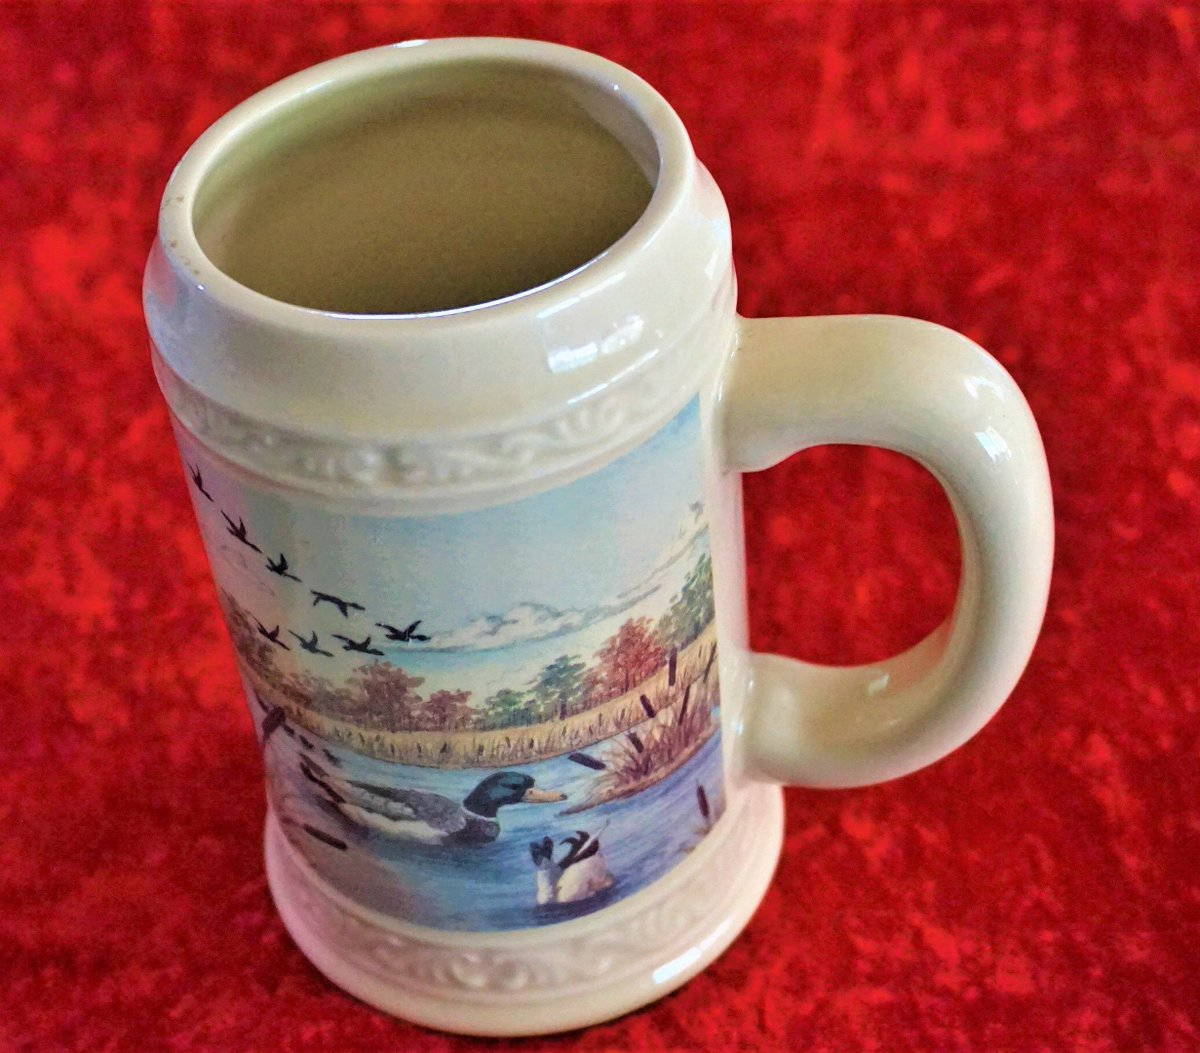 test Twitter Media - Excited to share the latest addition to my #etsy shop: Vintage Beer Stein Or Large Coffee Mug, Rare Find Collectible Ducks & Cattails Stoneware Unique Gift For Him Or Her, Same Day Free Shipping. https://t.co/V3naQKwV52 #housewares #blue #birthday #fathersday #no #cera https://t.co/GNv4iM65FM